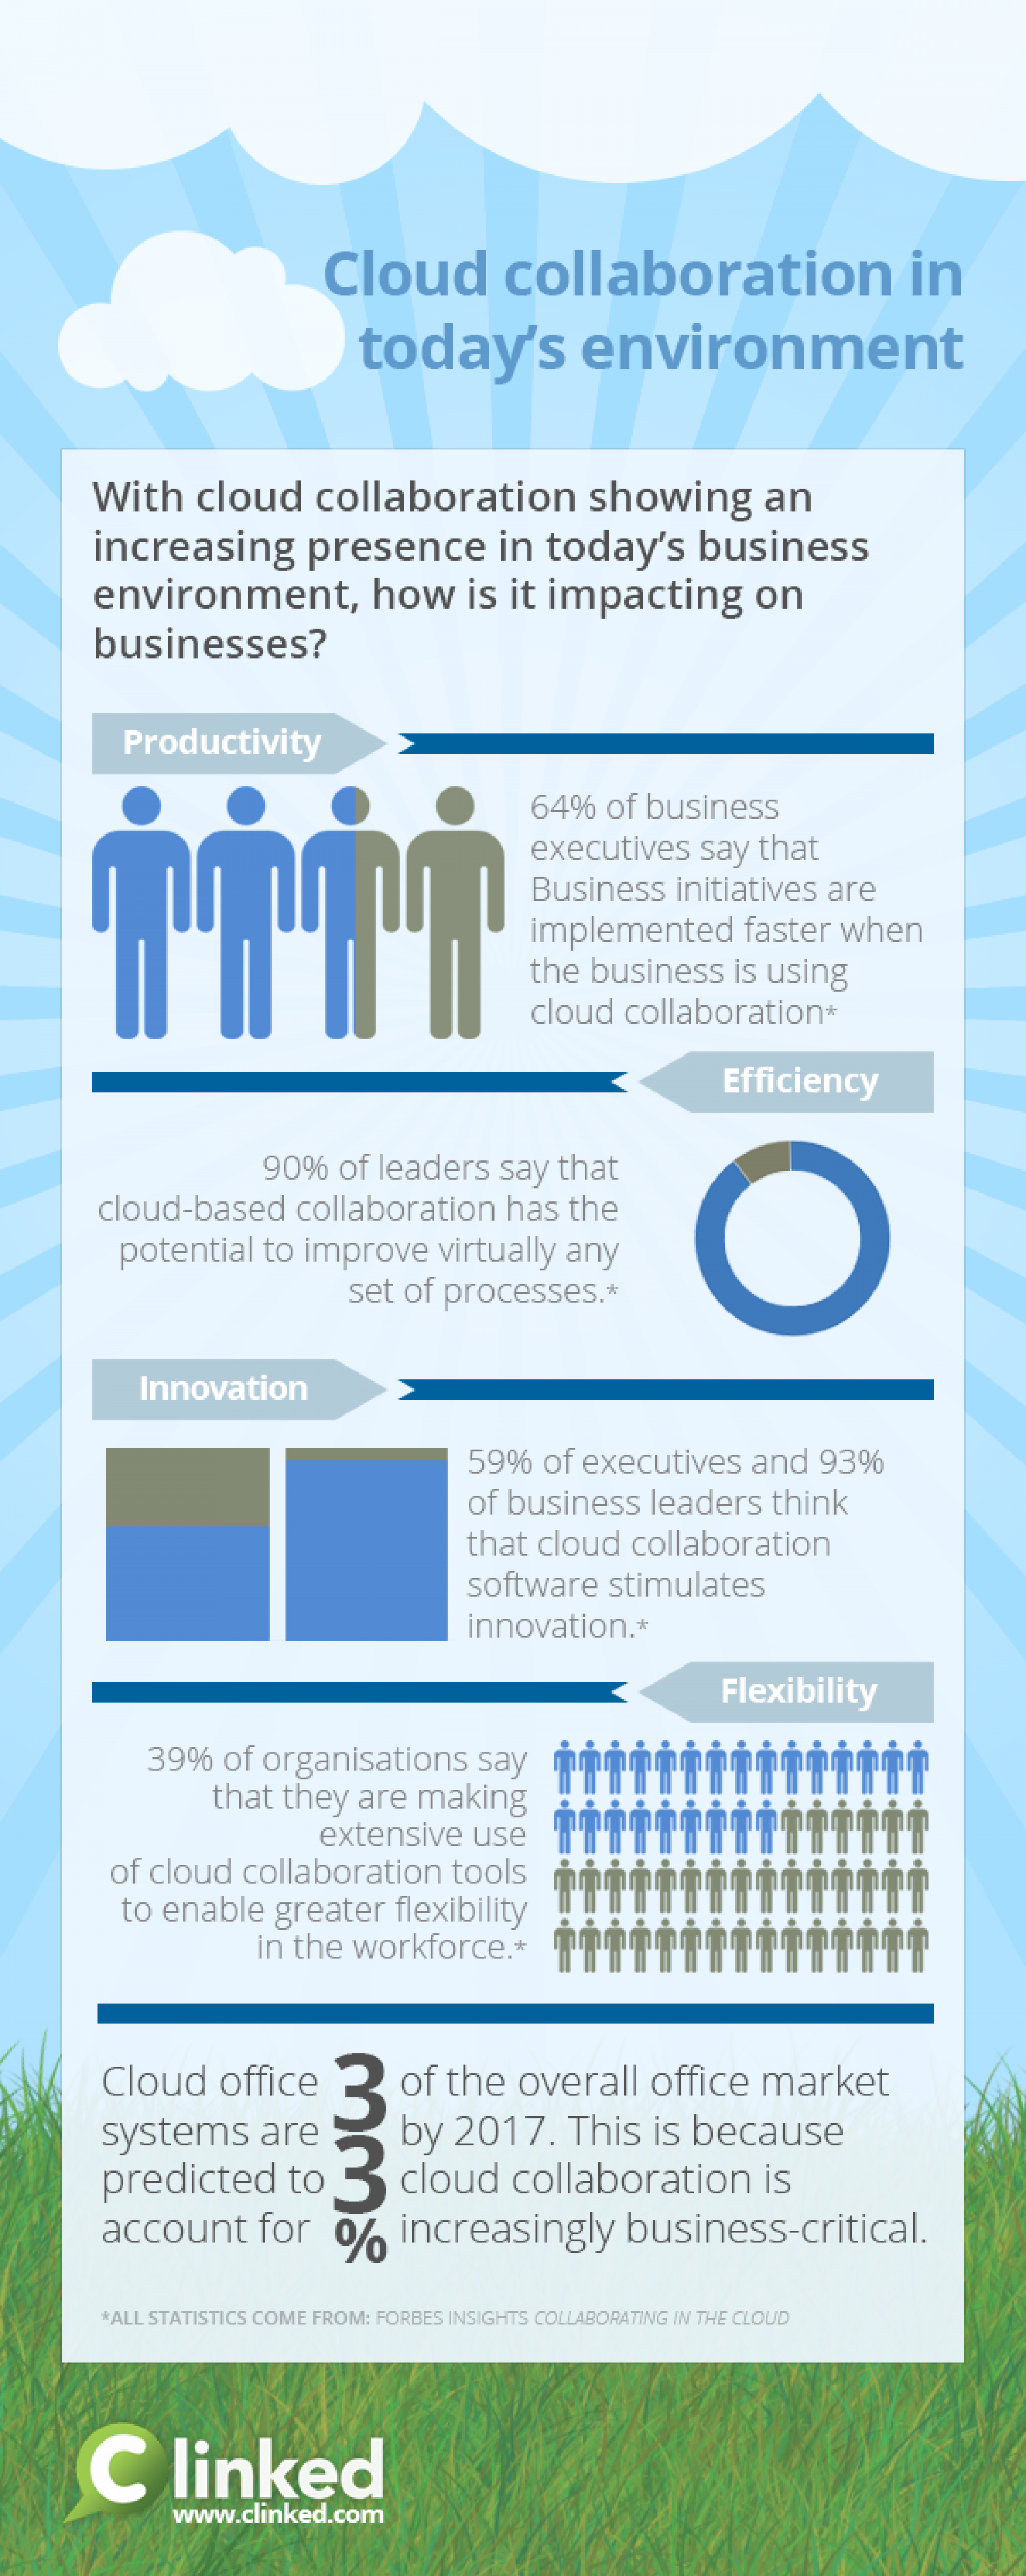 Cloud Collaboration software in today's business environment Infographic